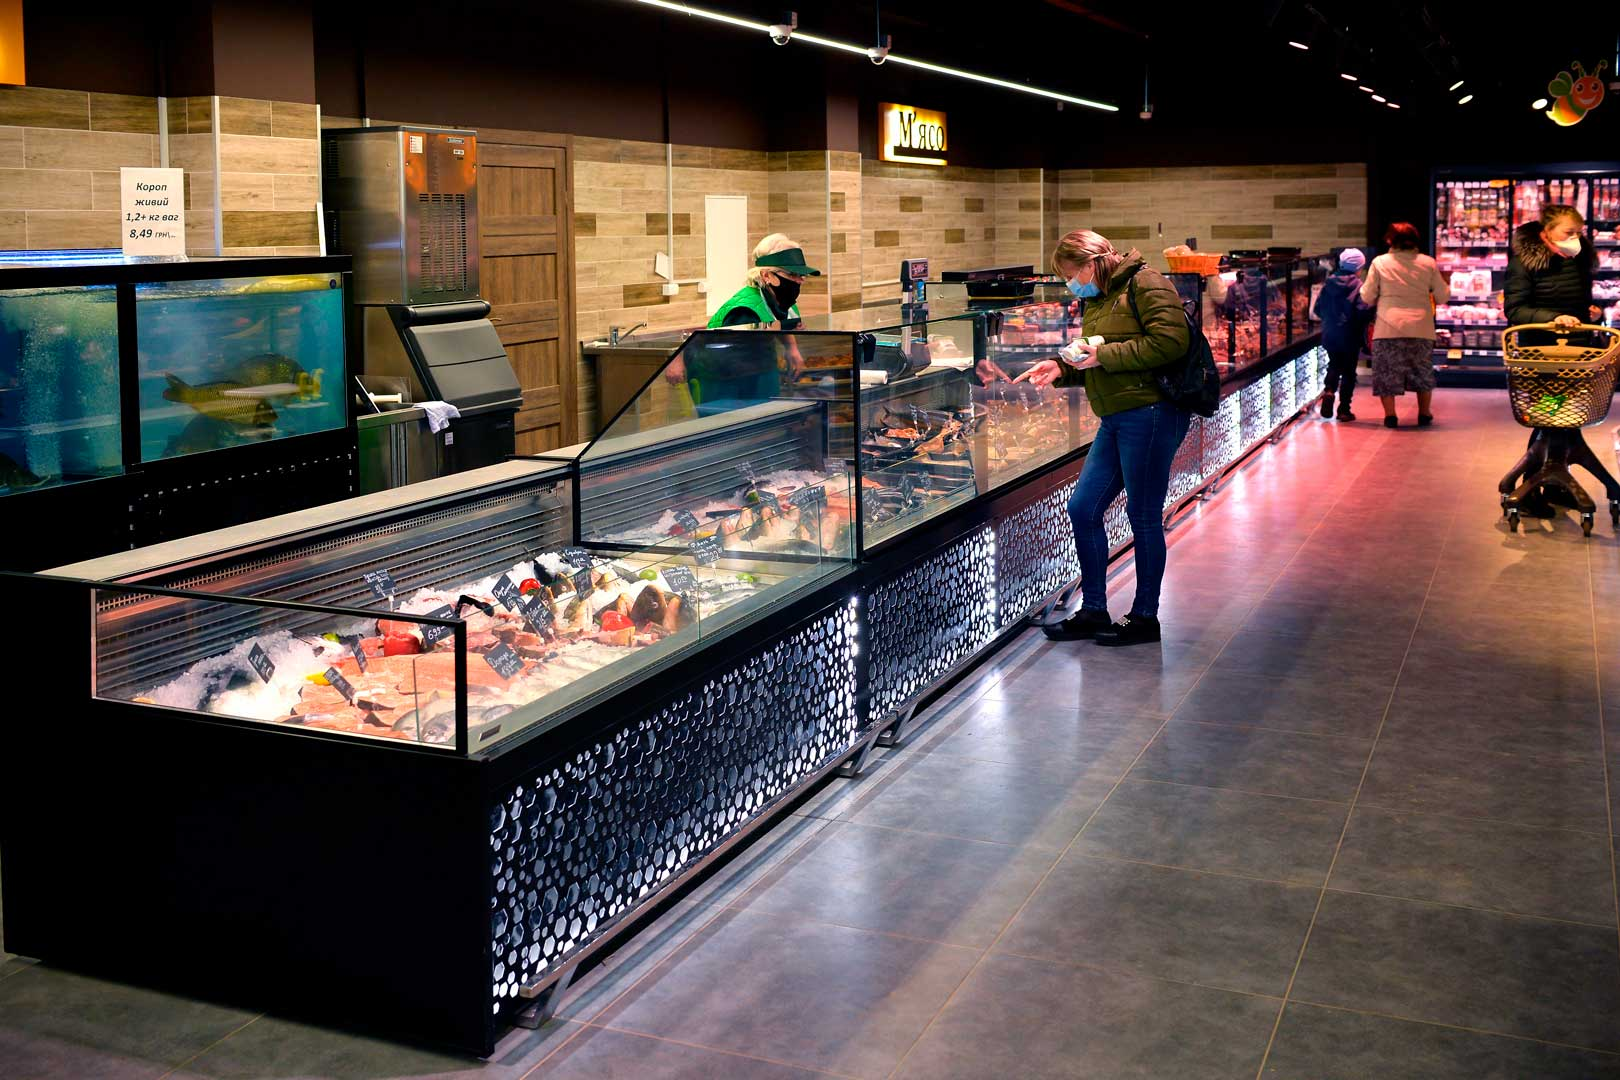 Specialized counters for fish and seafood sales Missouri MC 120 fish PS 13 and Missouri MC 120 fish self 086